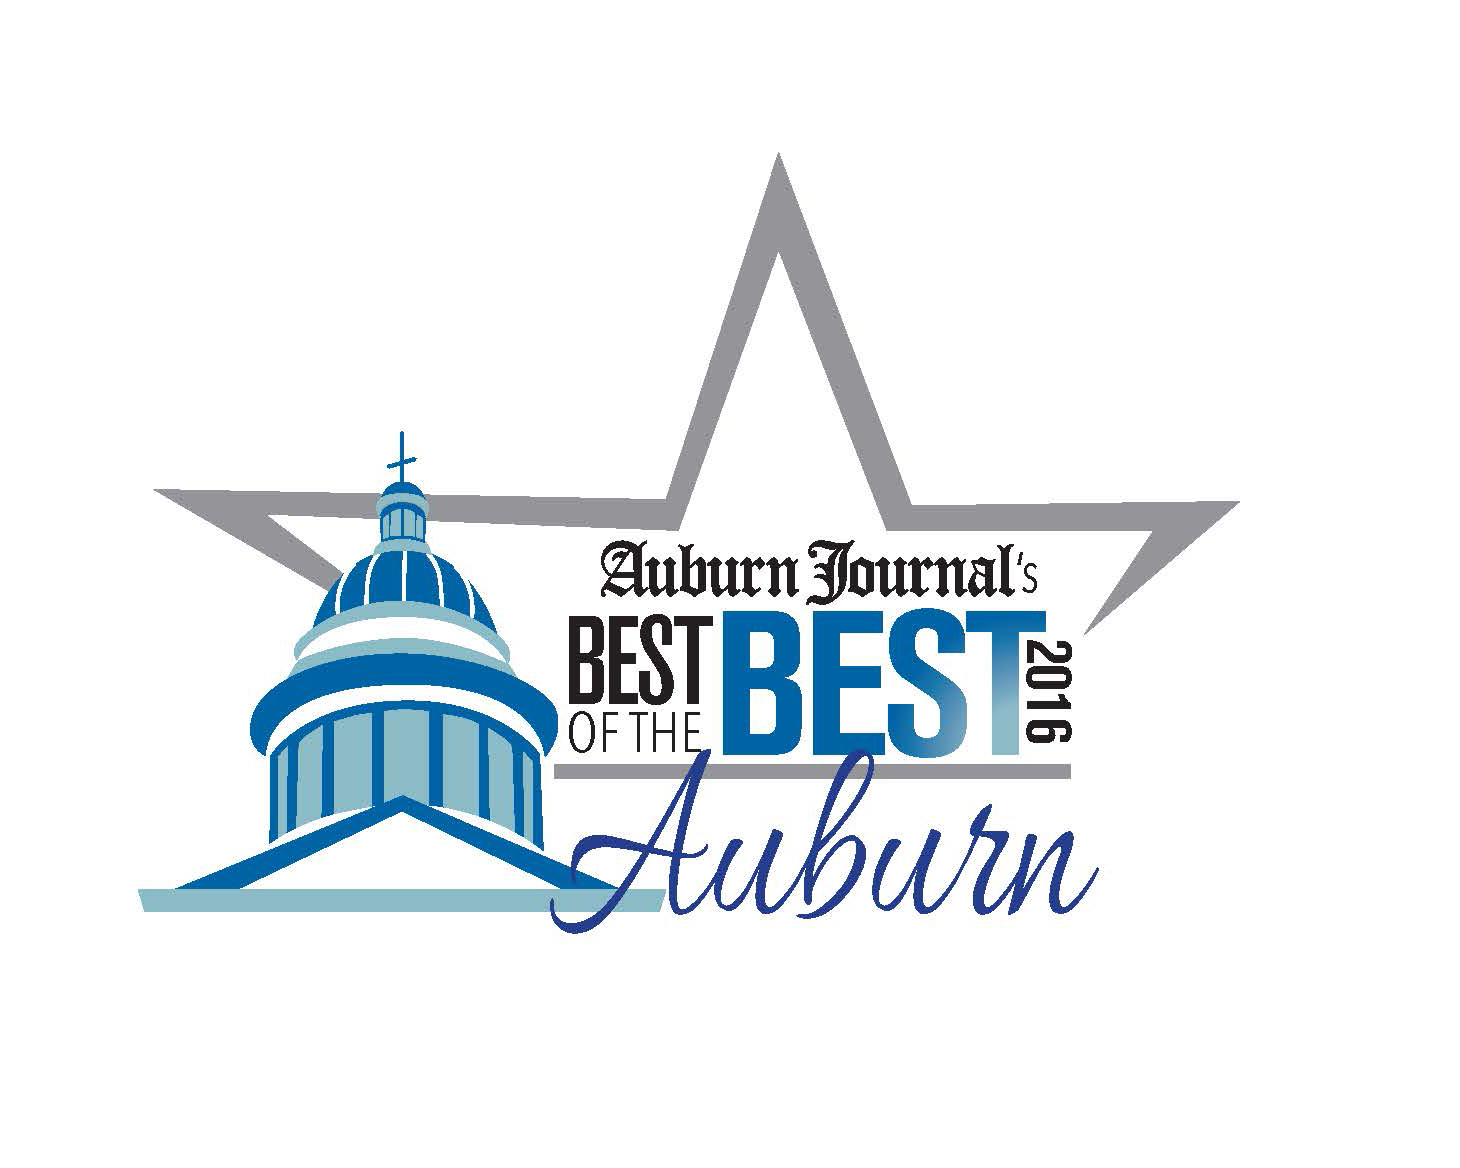 Auburn Journal Best of the Best